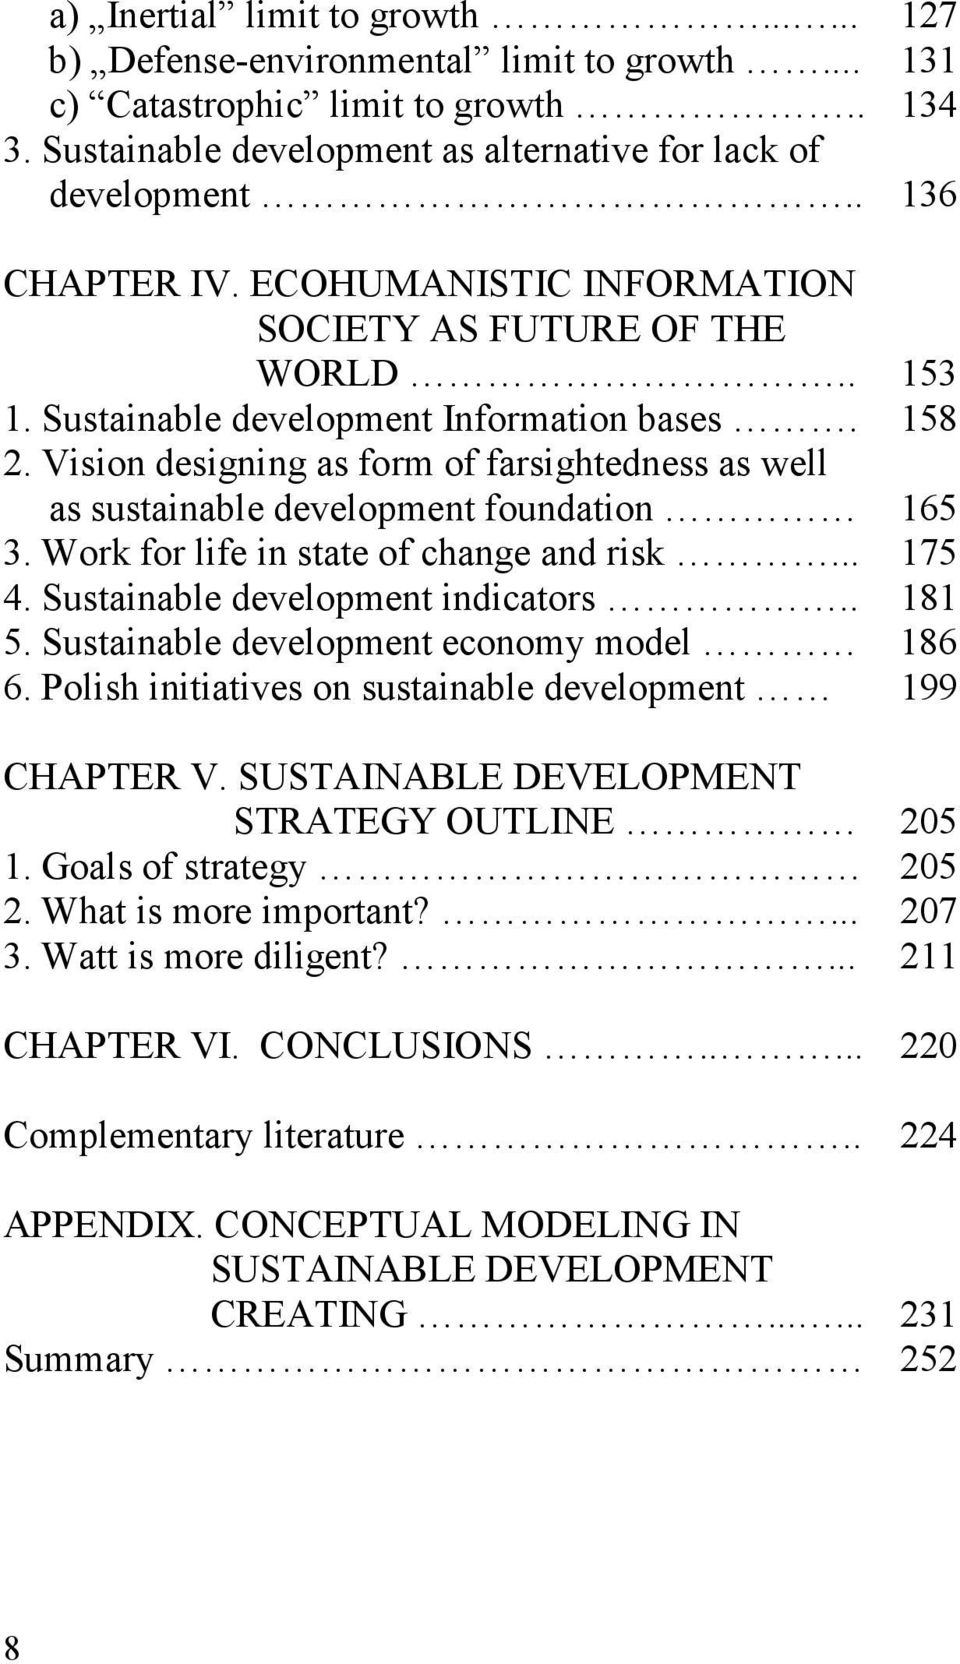 Vision designing as form of farsightedness as well as sustainable development foundation 165 3. Work for life in state of change and risk... 175 4. Sustainable development indicators.. 181 5.